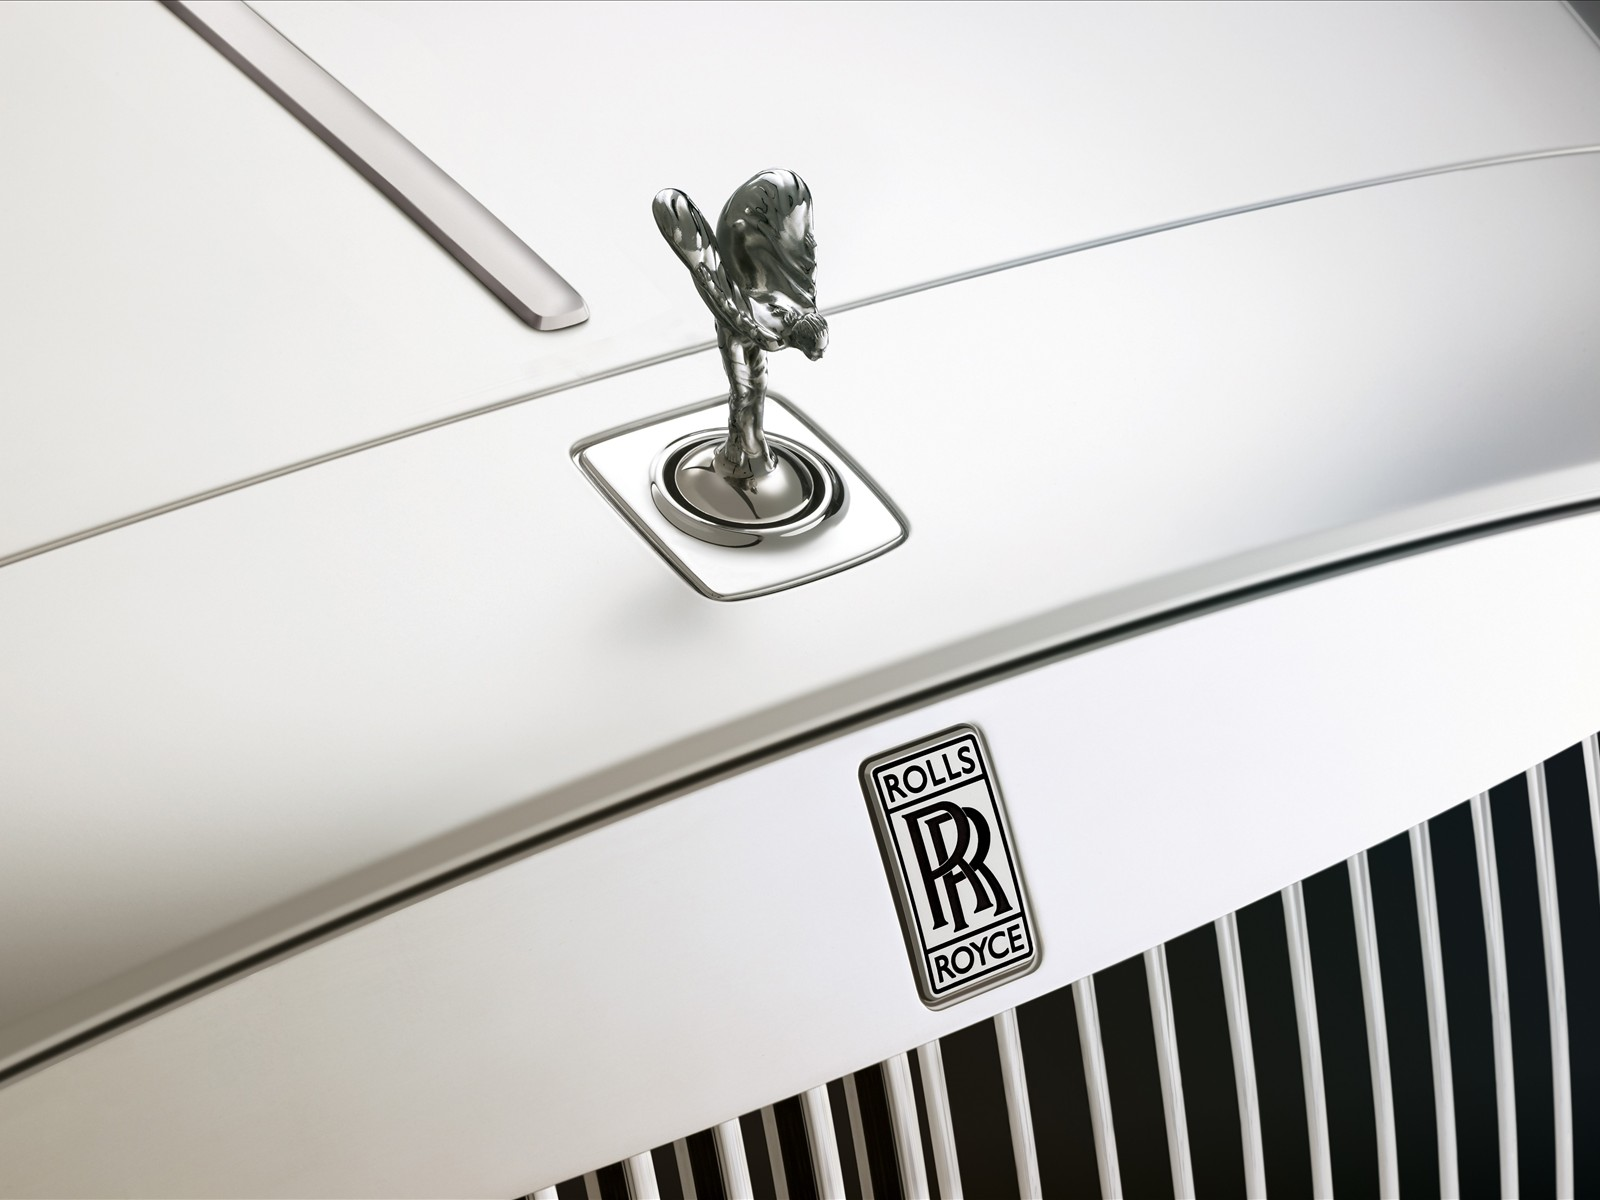 History Of All Logos All Rolls Royce Logos